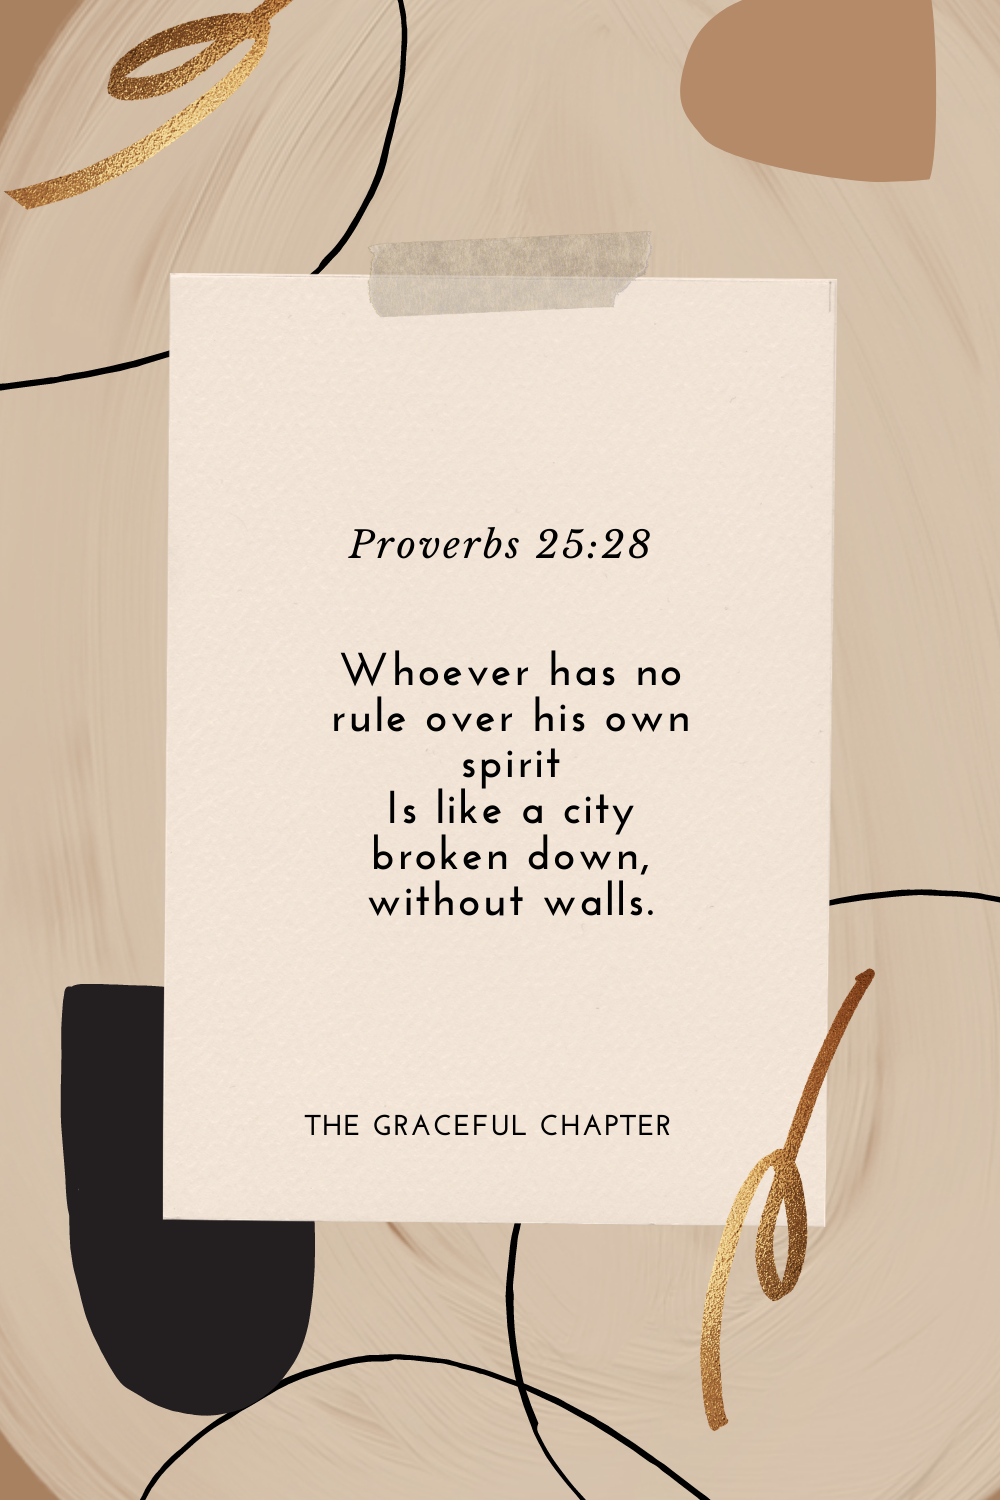 Whoever has no rule over his own spirit Is like a city broken down, without walls. Proverbs 25:28